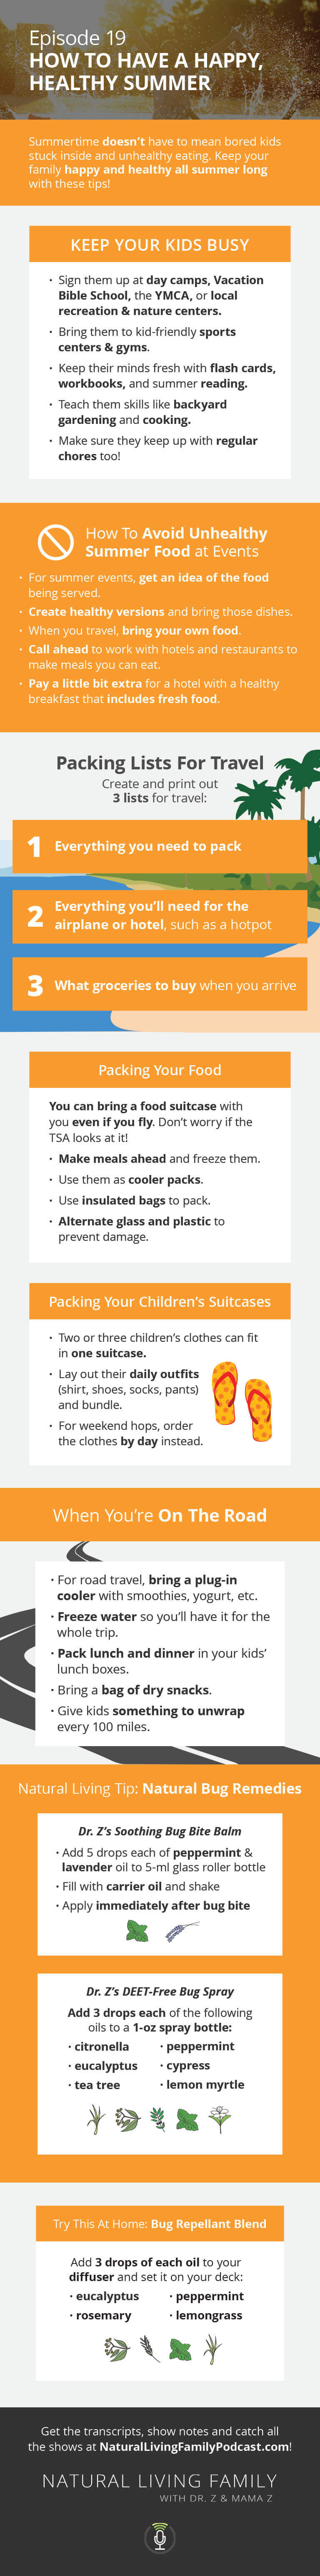 Healthy, Happy Summer Tips Kids, Picnics, Traveling and More - Podcast Episode 19 Infographic